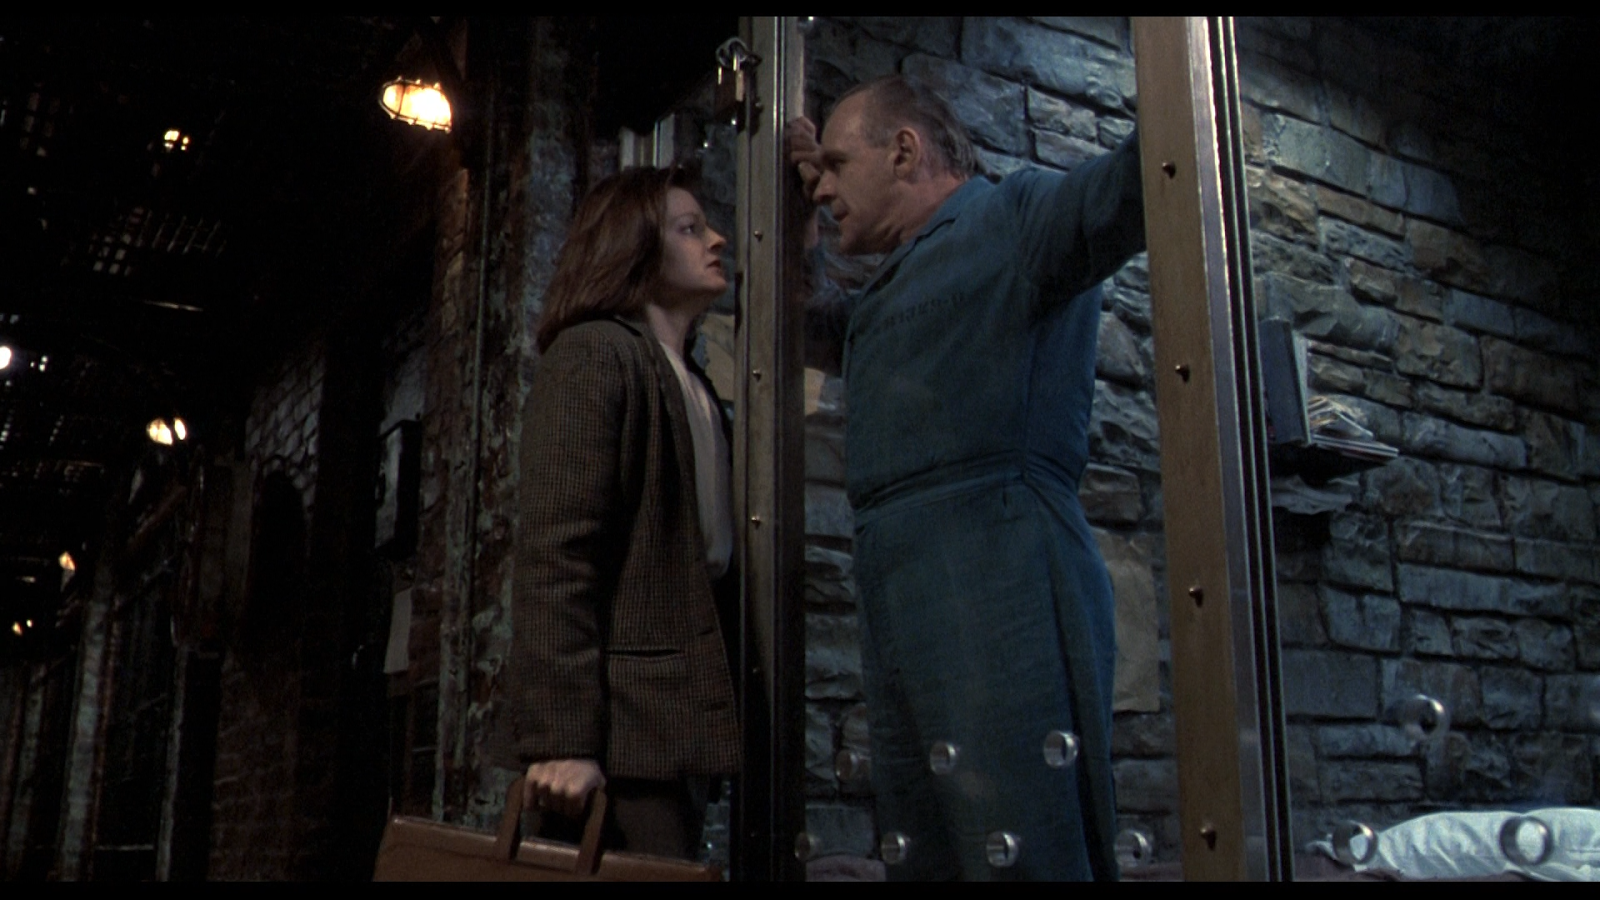 Silence of the Lambs | Clarice Starling & Hannibal Lector 02.jpg